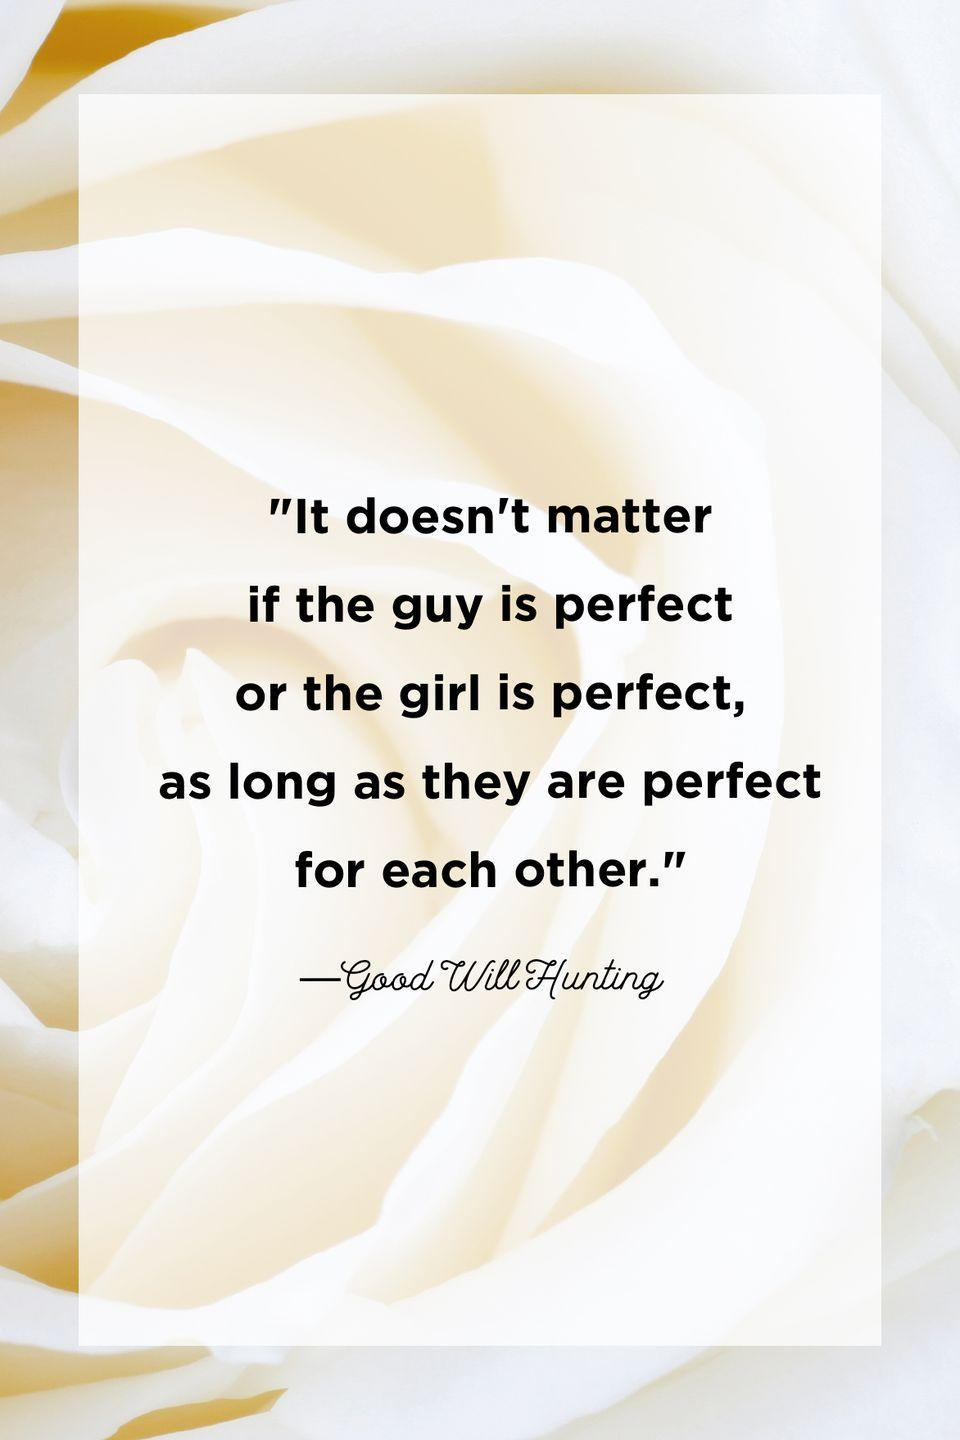 """<p>""""It doesn't matter if the guy is perfect or the girl is perfect, as long as they are perfect for each other.""""</p>"""